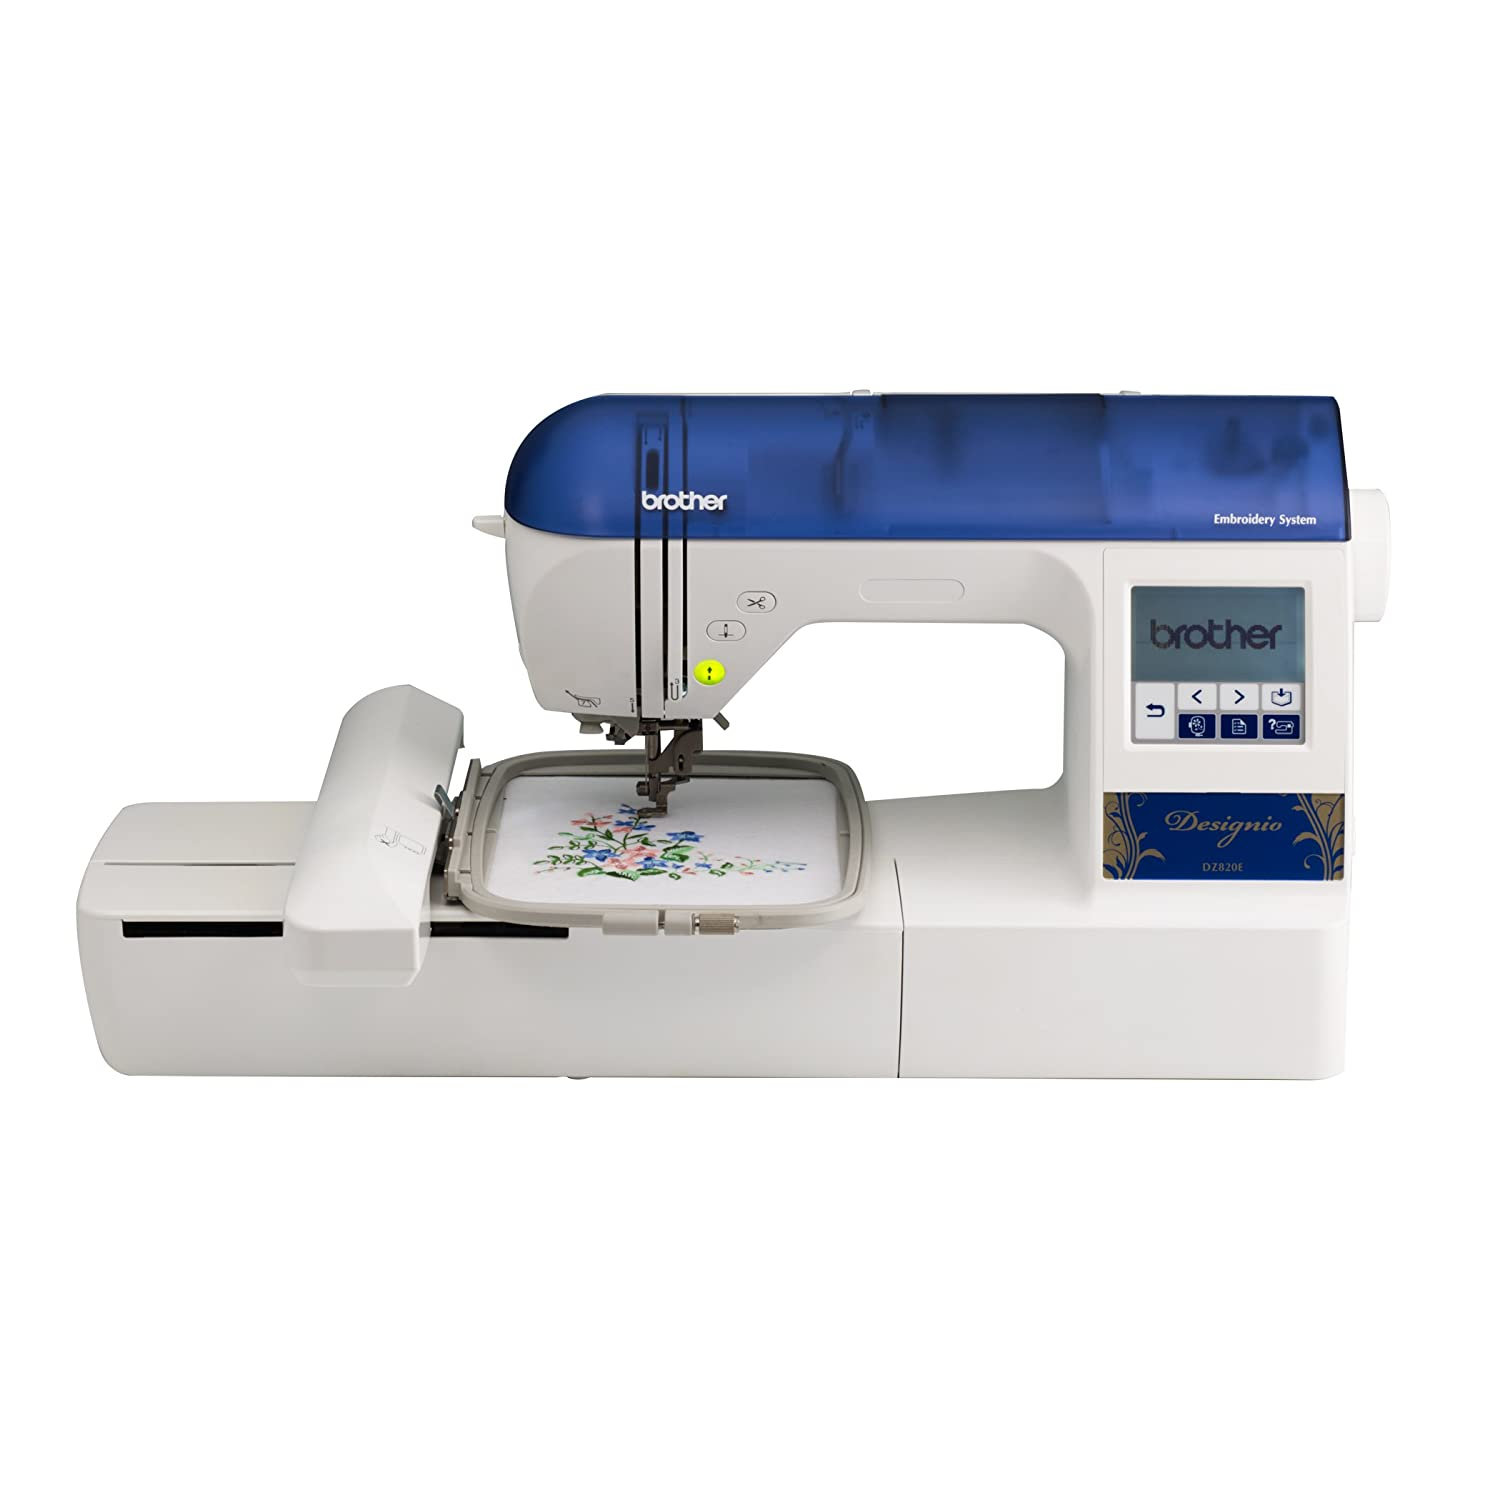 Brother Designio Series DZ820E Embroidery Only Machine Review